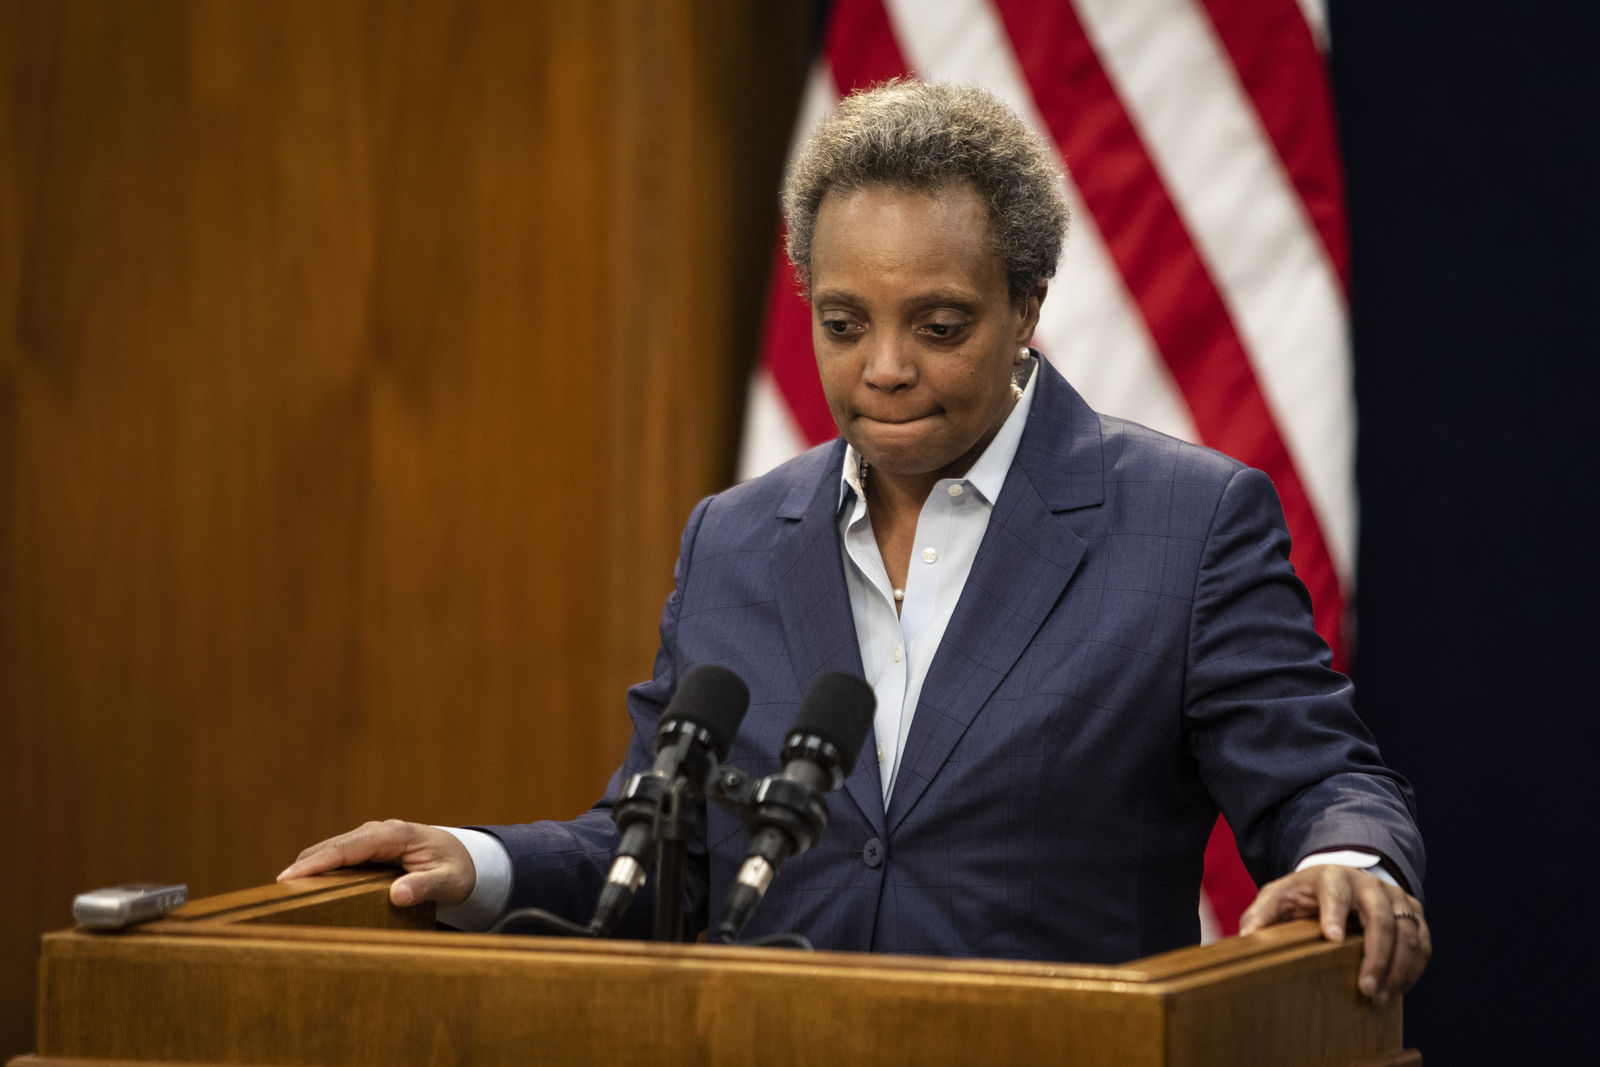 Mayor Lori Lightfoot speaks during a press conference at City Hall to announce the firing of Chicago Police Supt. Eddie Johnson, Monday morning, Dec. 2, 2019. | Ashlee Rezin Garcia/Sun-Times/Chicago Sun-Times via AP)